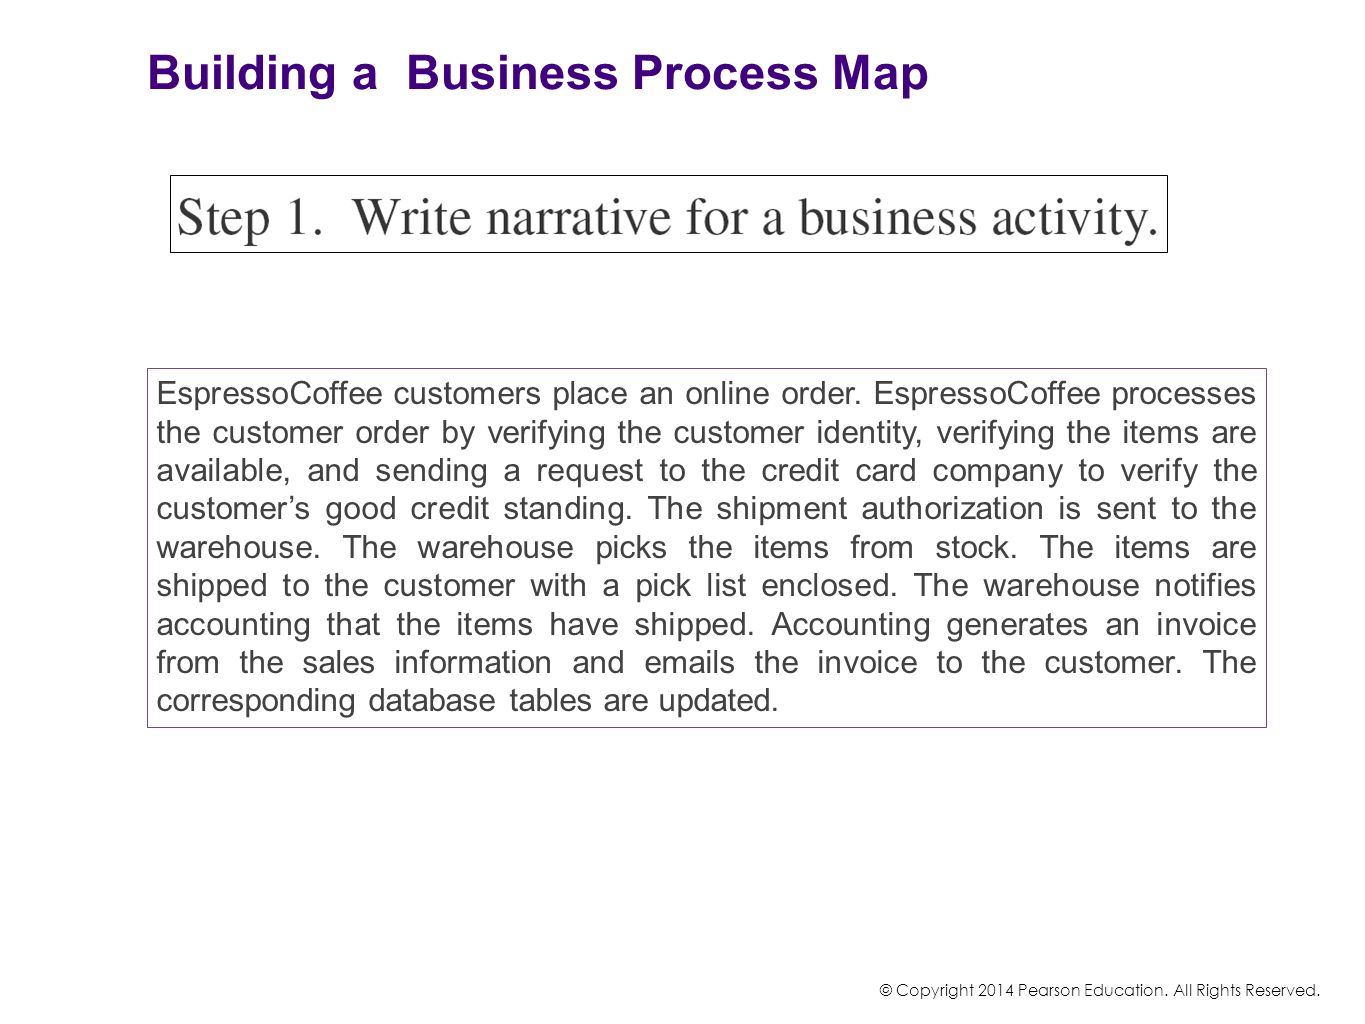 Accounting Systems Business Processes Chapter Ppt Video Online - How to write a business process